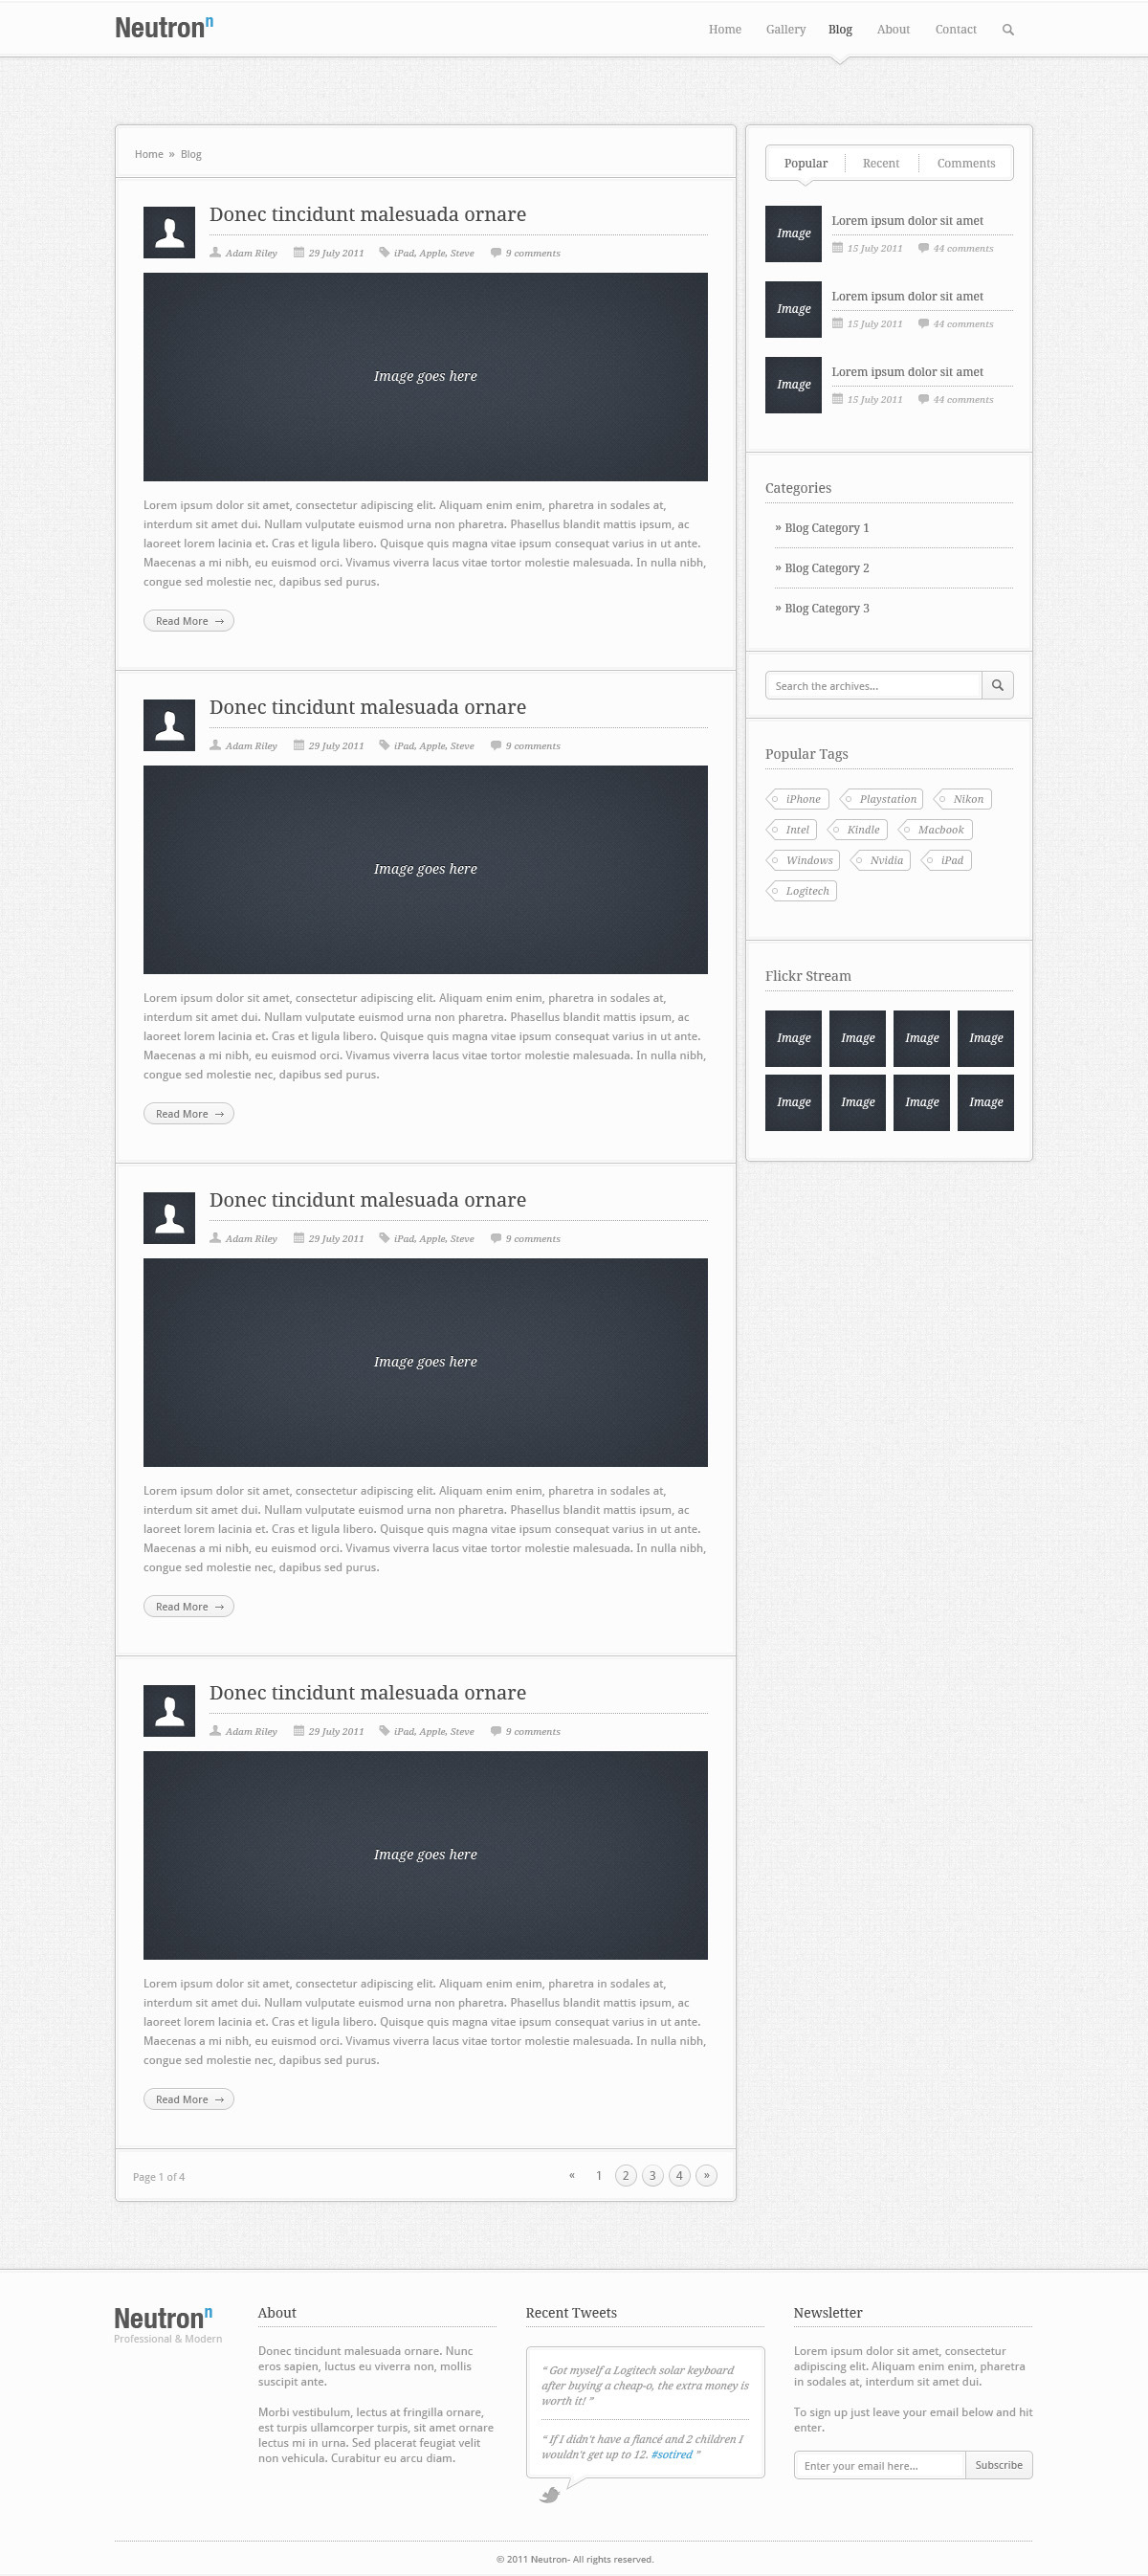 Neutron - PSD Theme - The Blog section of the Neutron theme, containing sections for: Breadcrumbs, Blog Posts, Pagination, as well as a Side Bar containing: Post Categories, Archives, Popular Tags and a Flickr Stream, plus the header and footer sections.